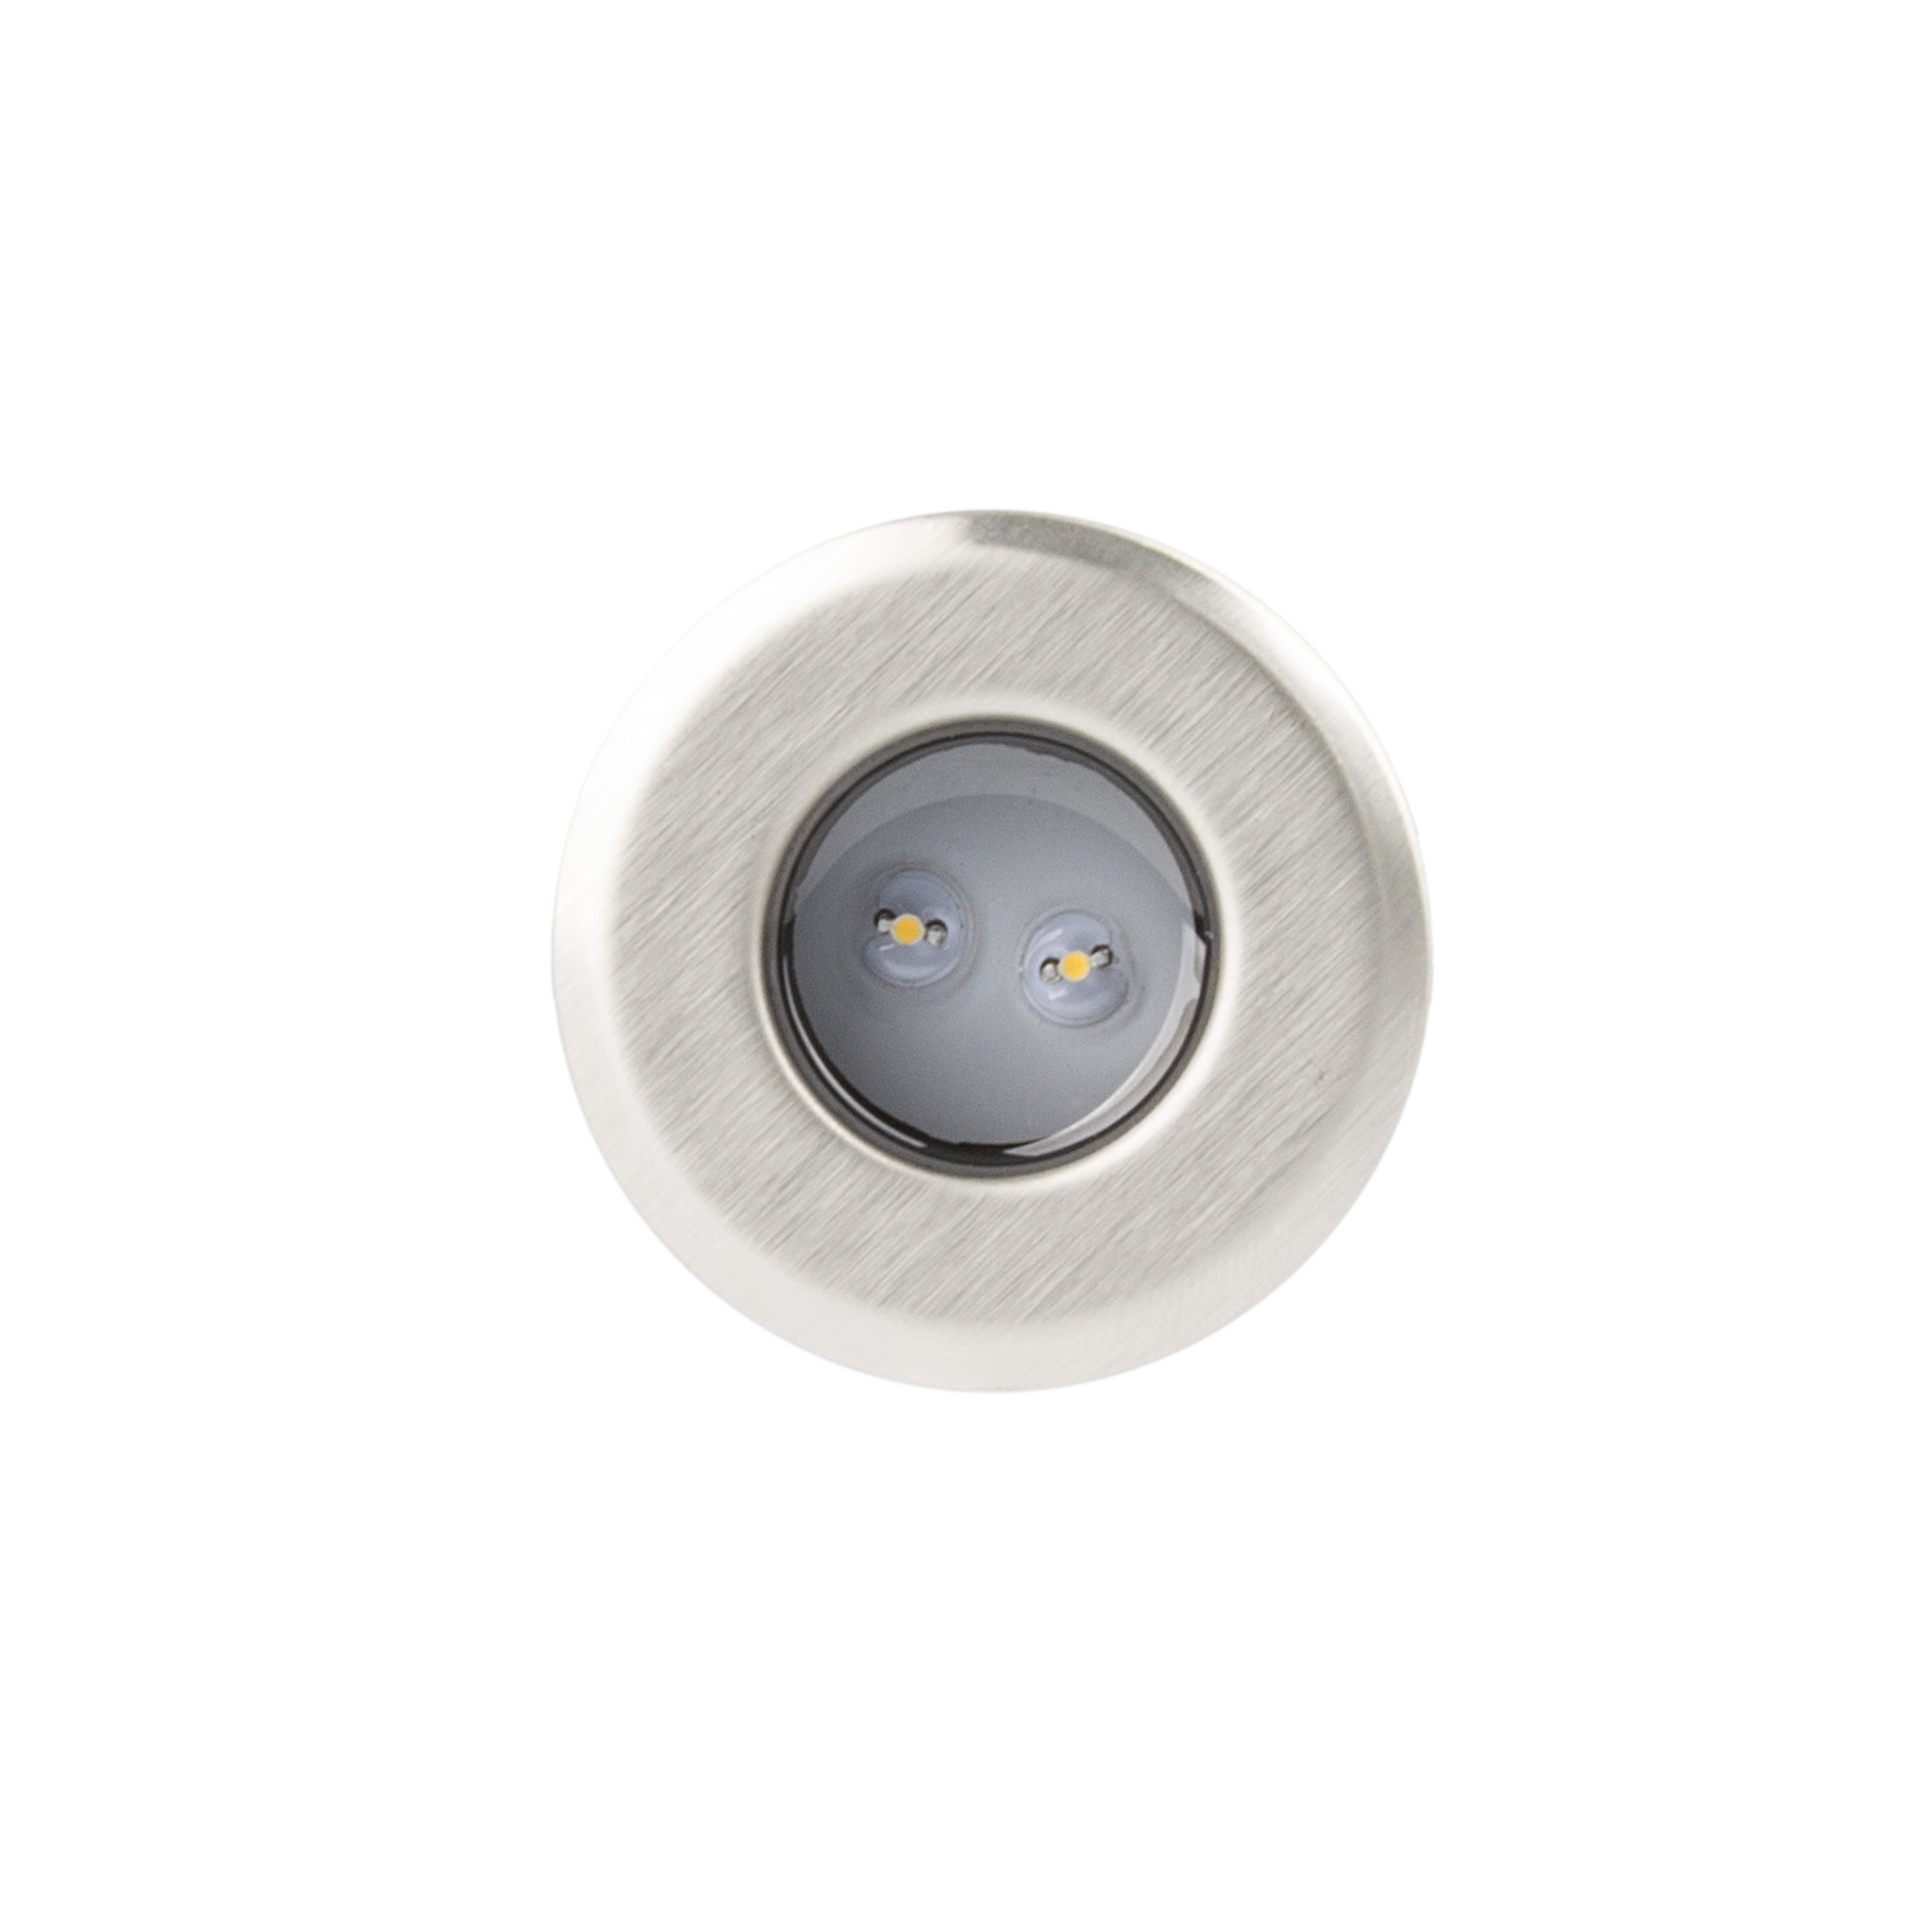 0.2W Mini LED Light - Ledkia United Kingdom